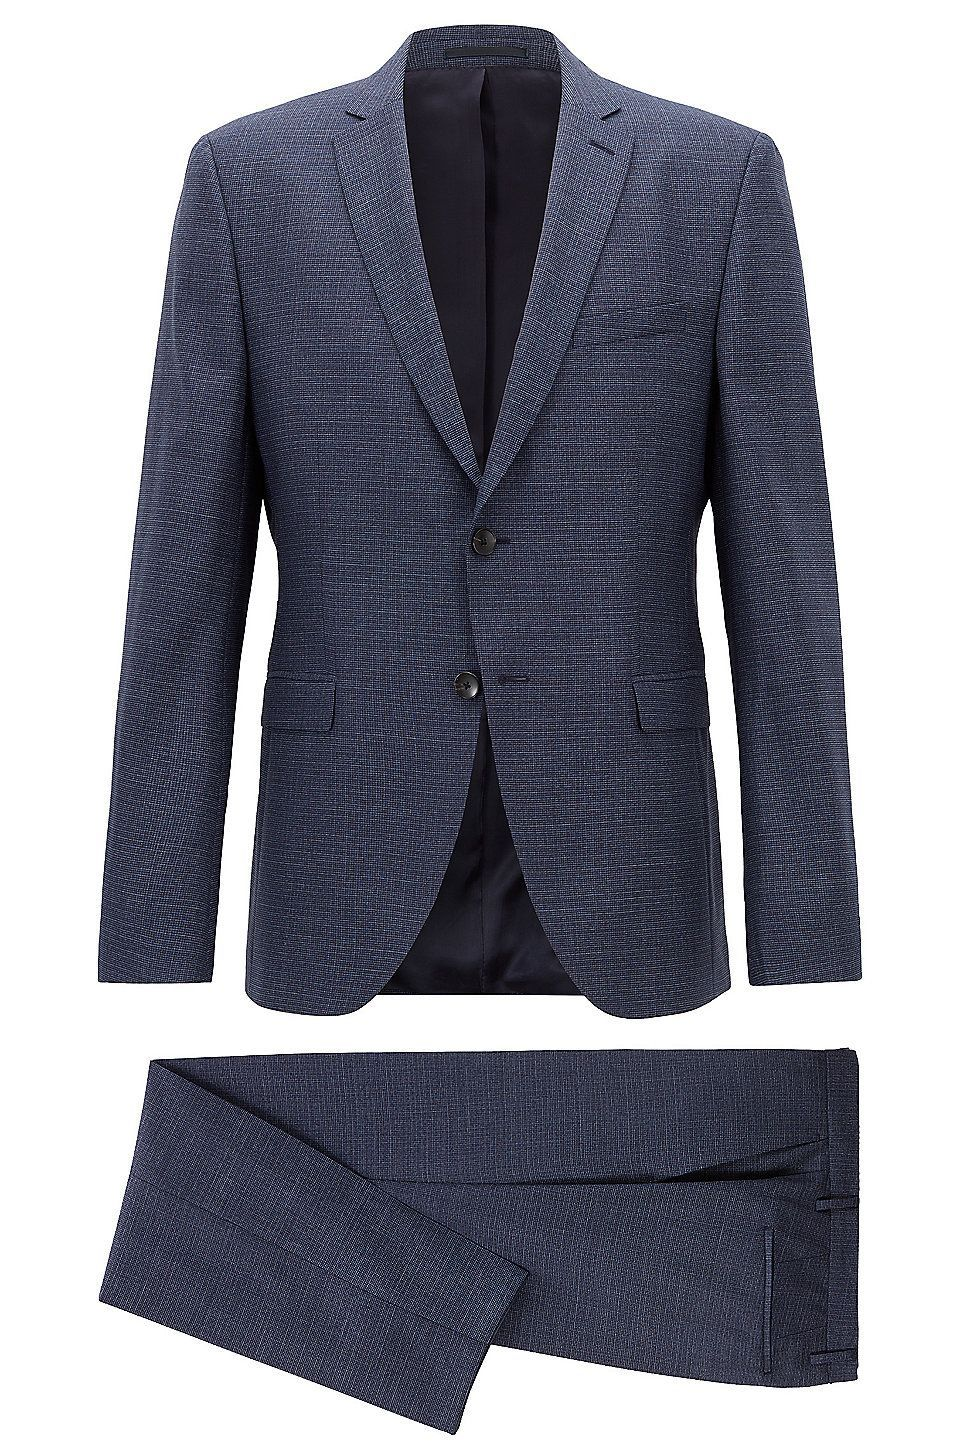 ece2f06d3 Hugo Boss Extra-slim-fit virgin-wool suit with pattern - Dark Blue Business  Suits from BOSS for Men in the official HUGO BOSS Online Store free shipping